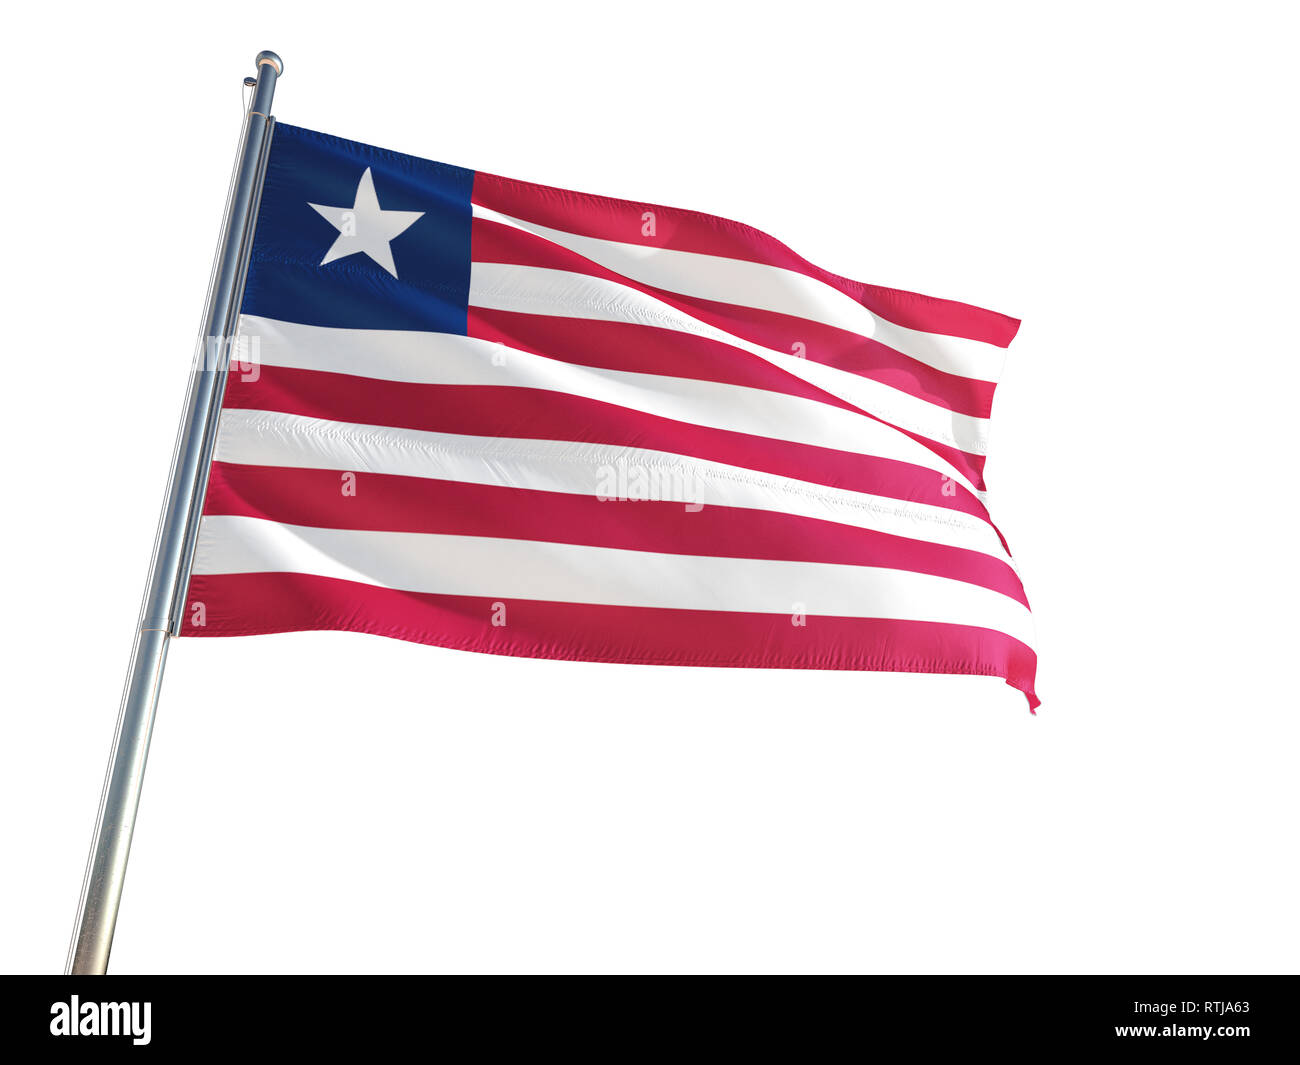 Liberia National Flag waving in the wind, isolated white background. High Definition - Stock Image